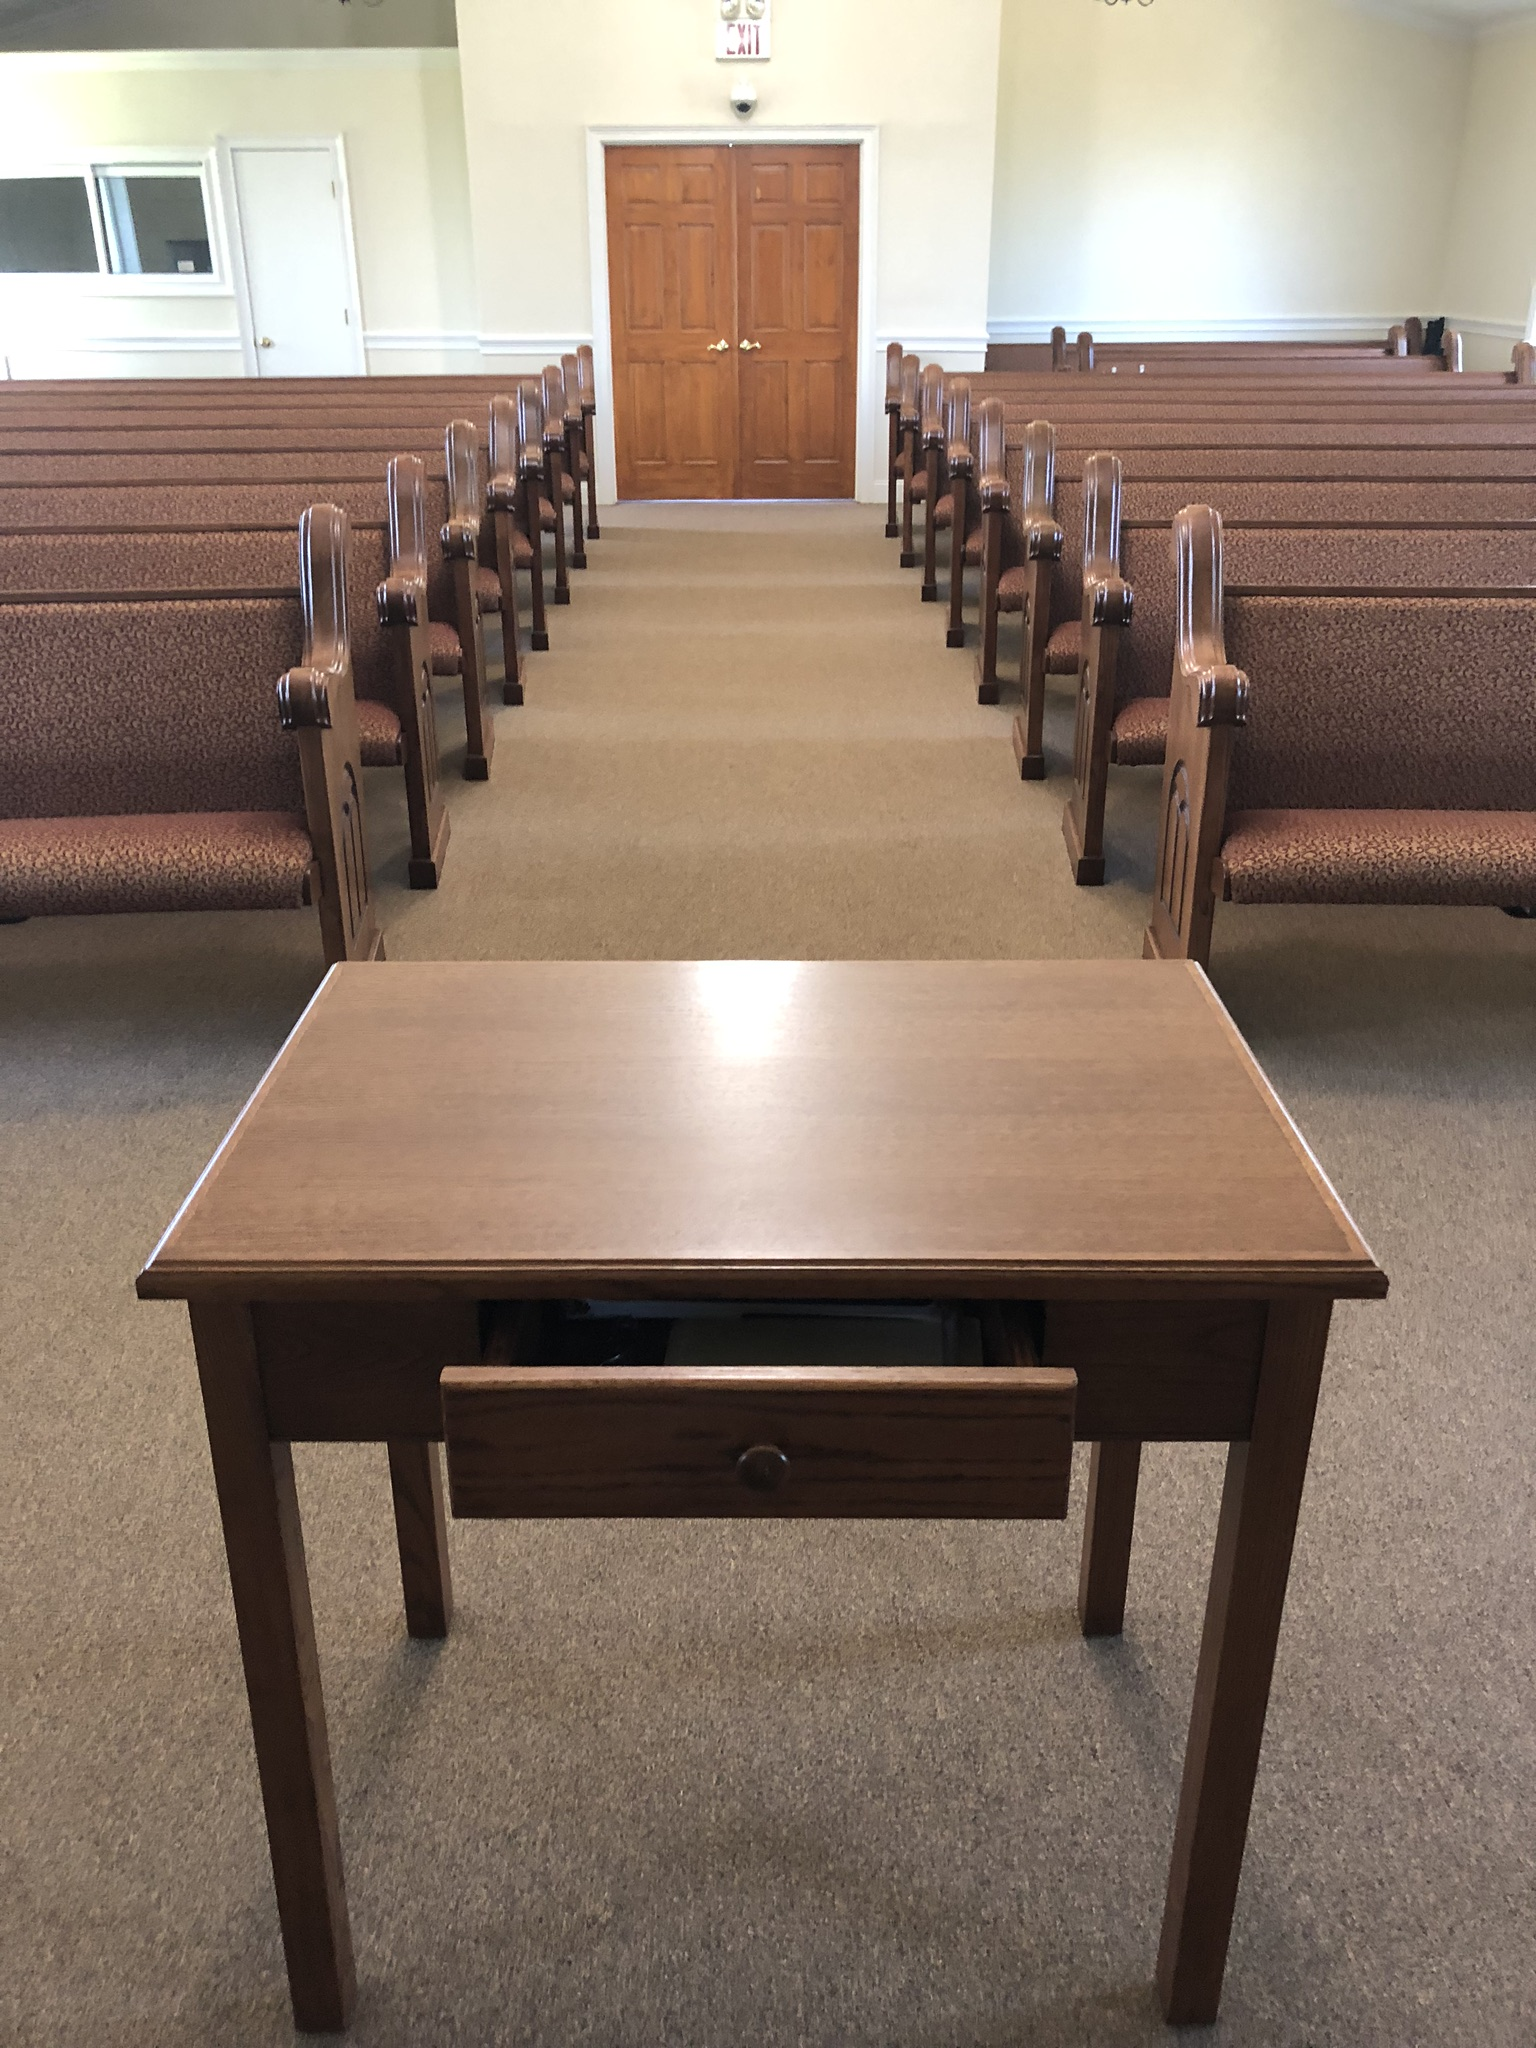 Pew Chairs Used Pews For Sale By A Church Summit Seating For Churches